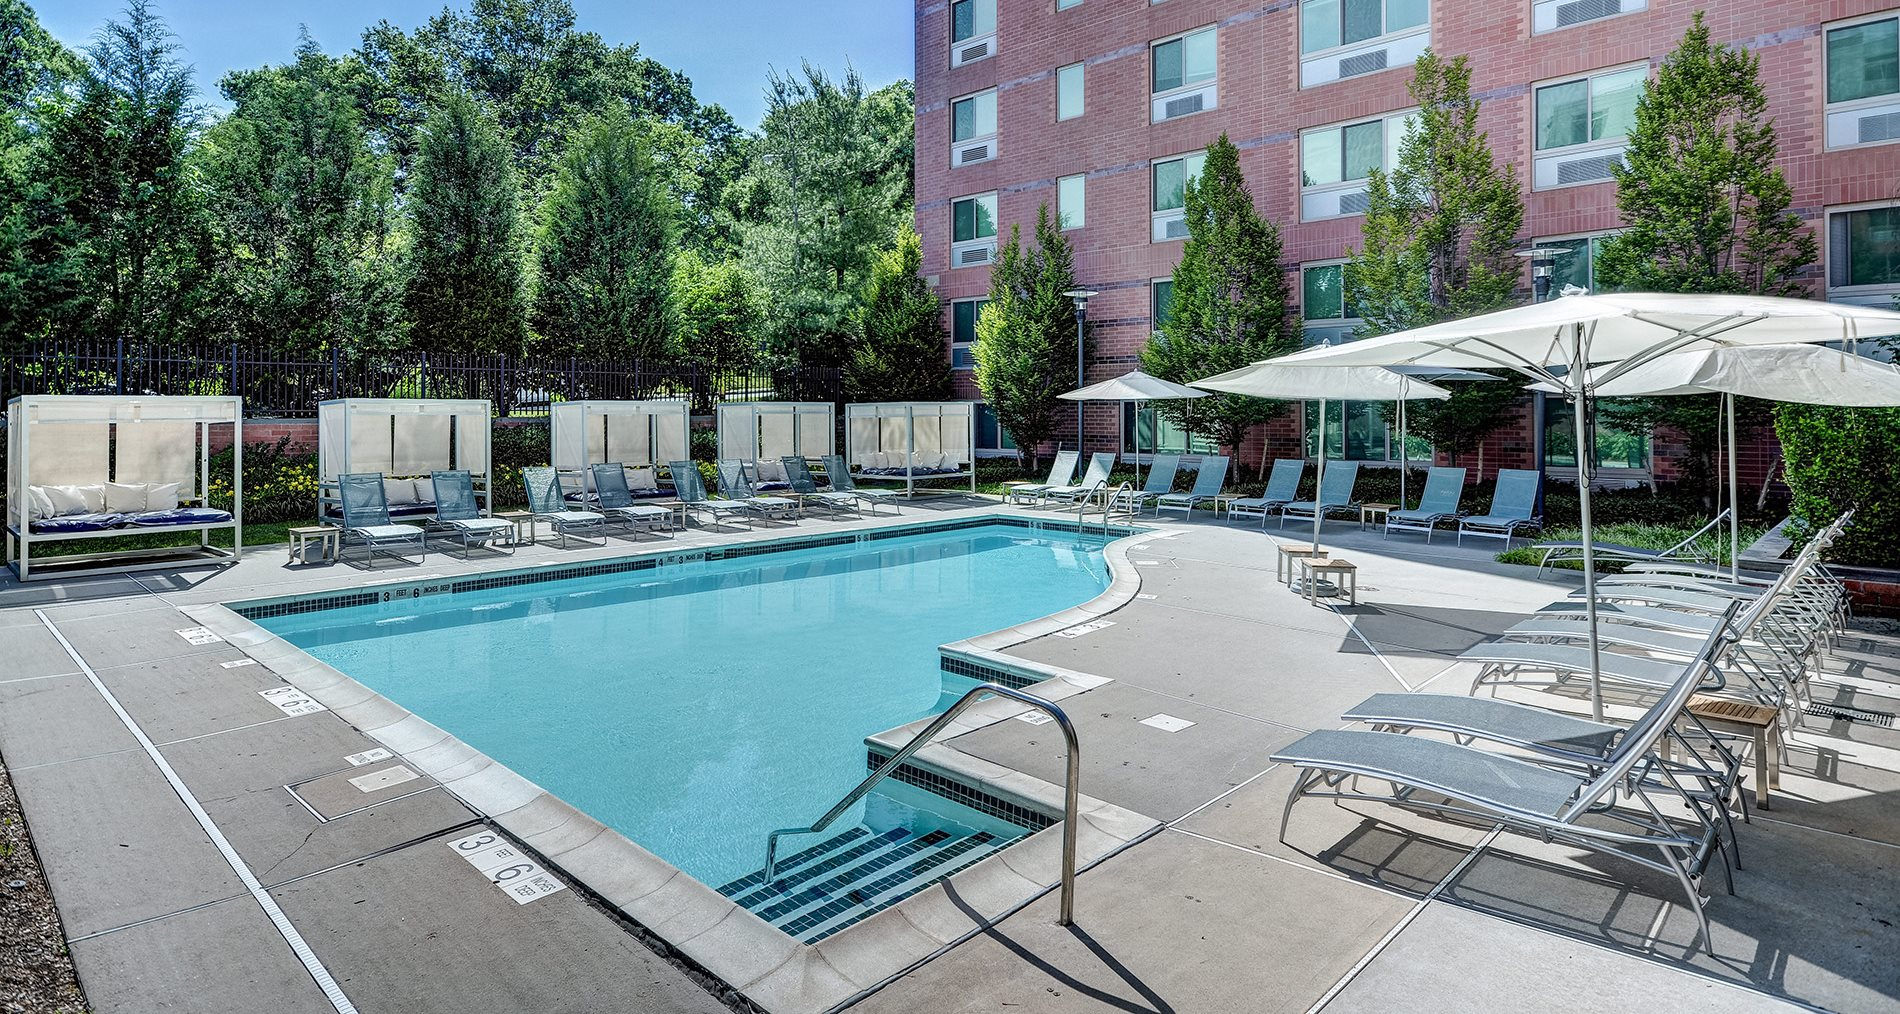 Pool Cabana & Outdoor Entertainment Bar at Windsor at The Gramercy, 2 Canfield Ave., White Plains, NY 10601